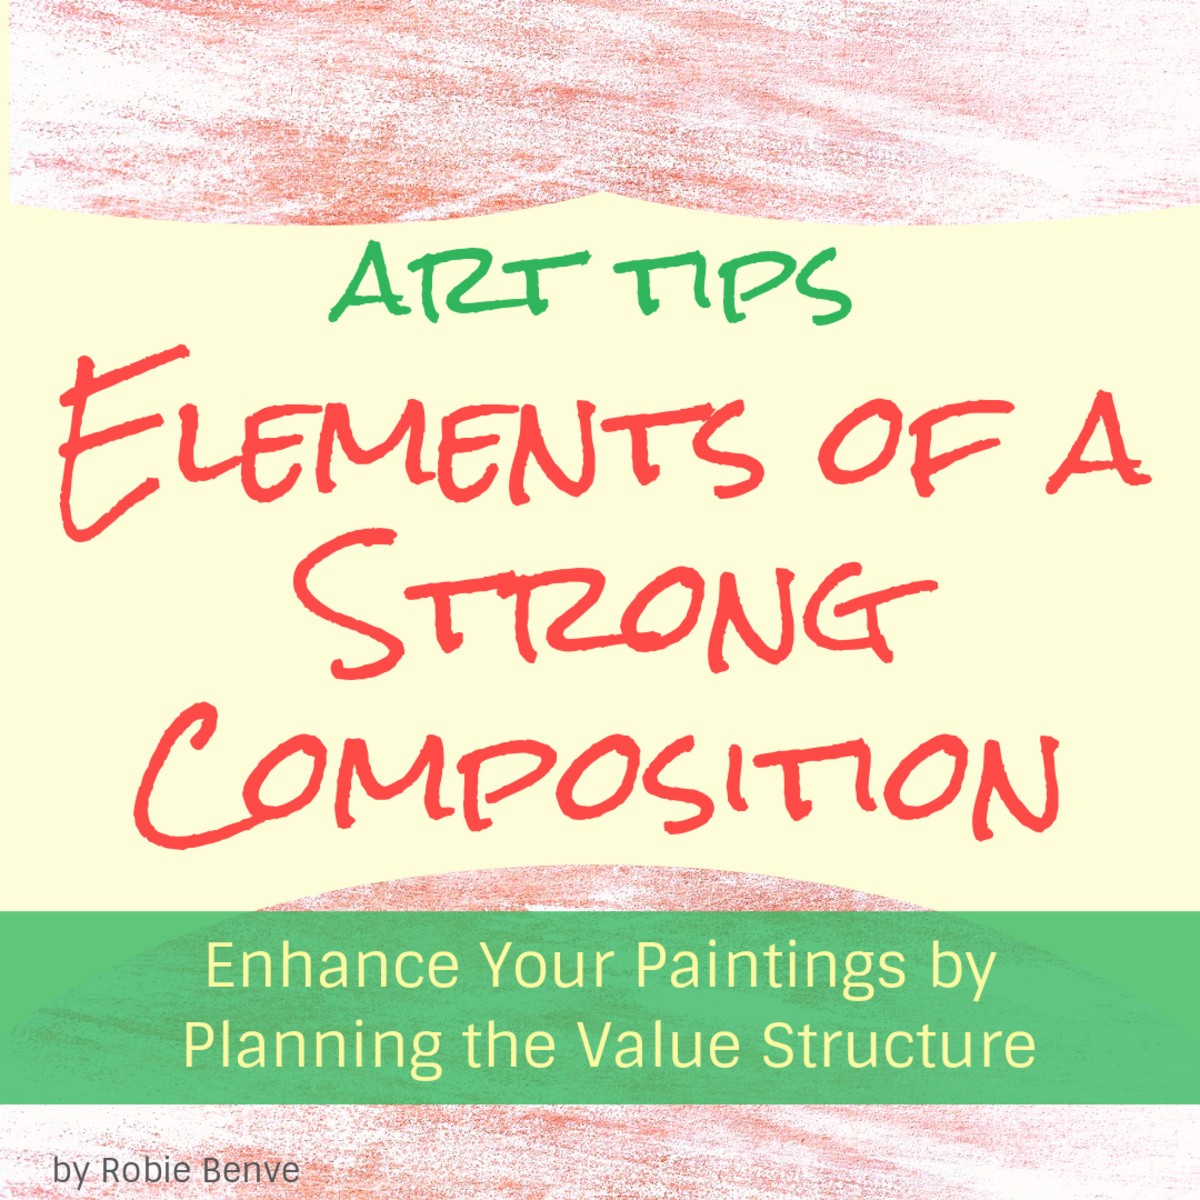 The way elements are arranged in the picture acts as the armature and supporting structure of a painting. To make a piece successful and interesting for the viewer, plan a composition with a strong value structure.